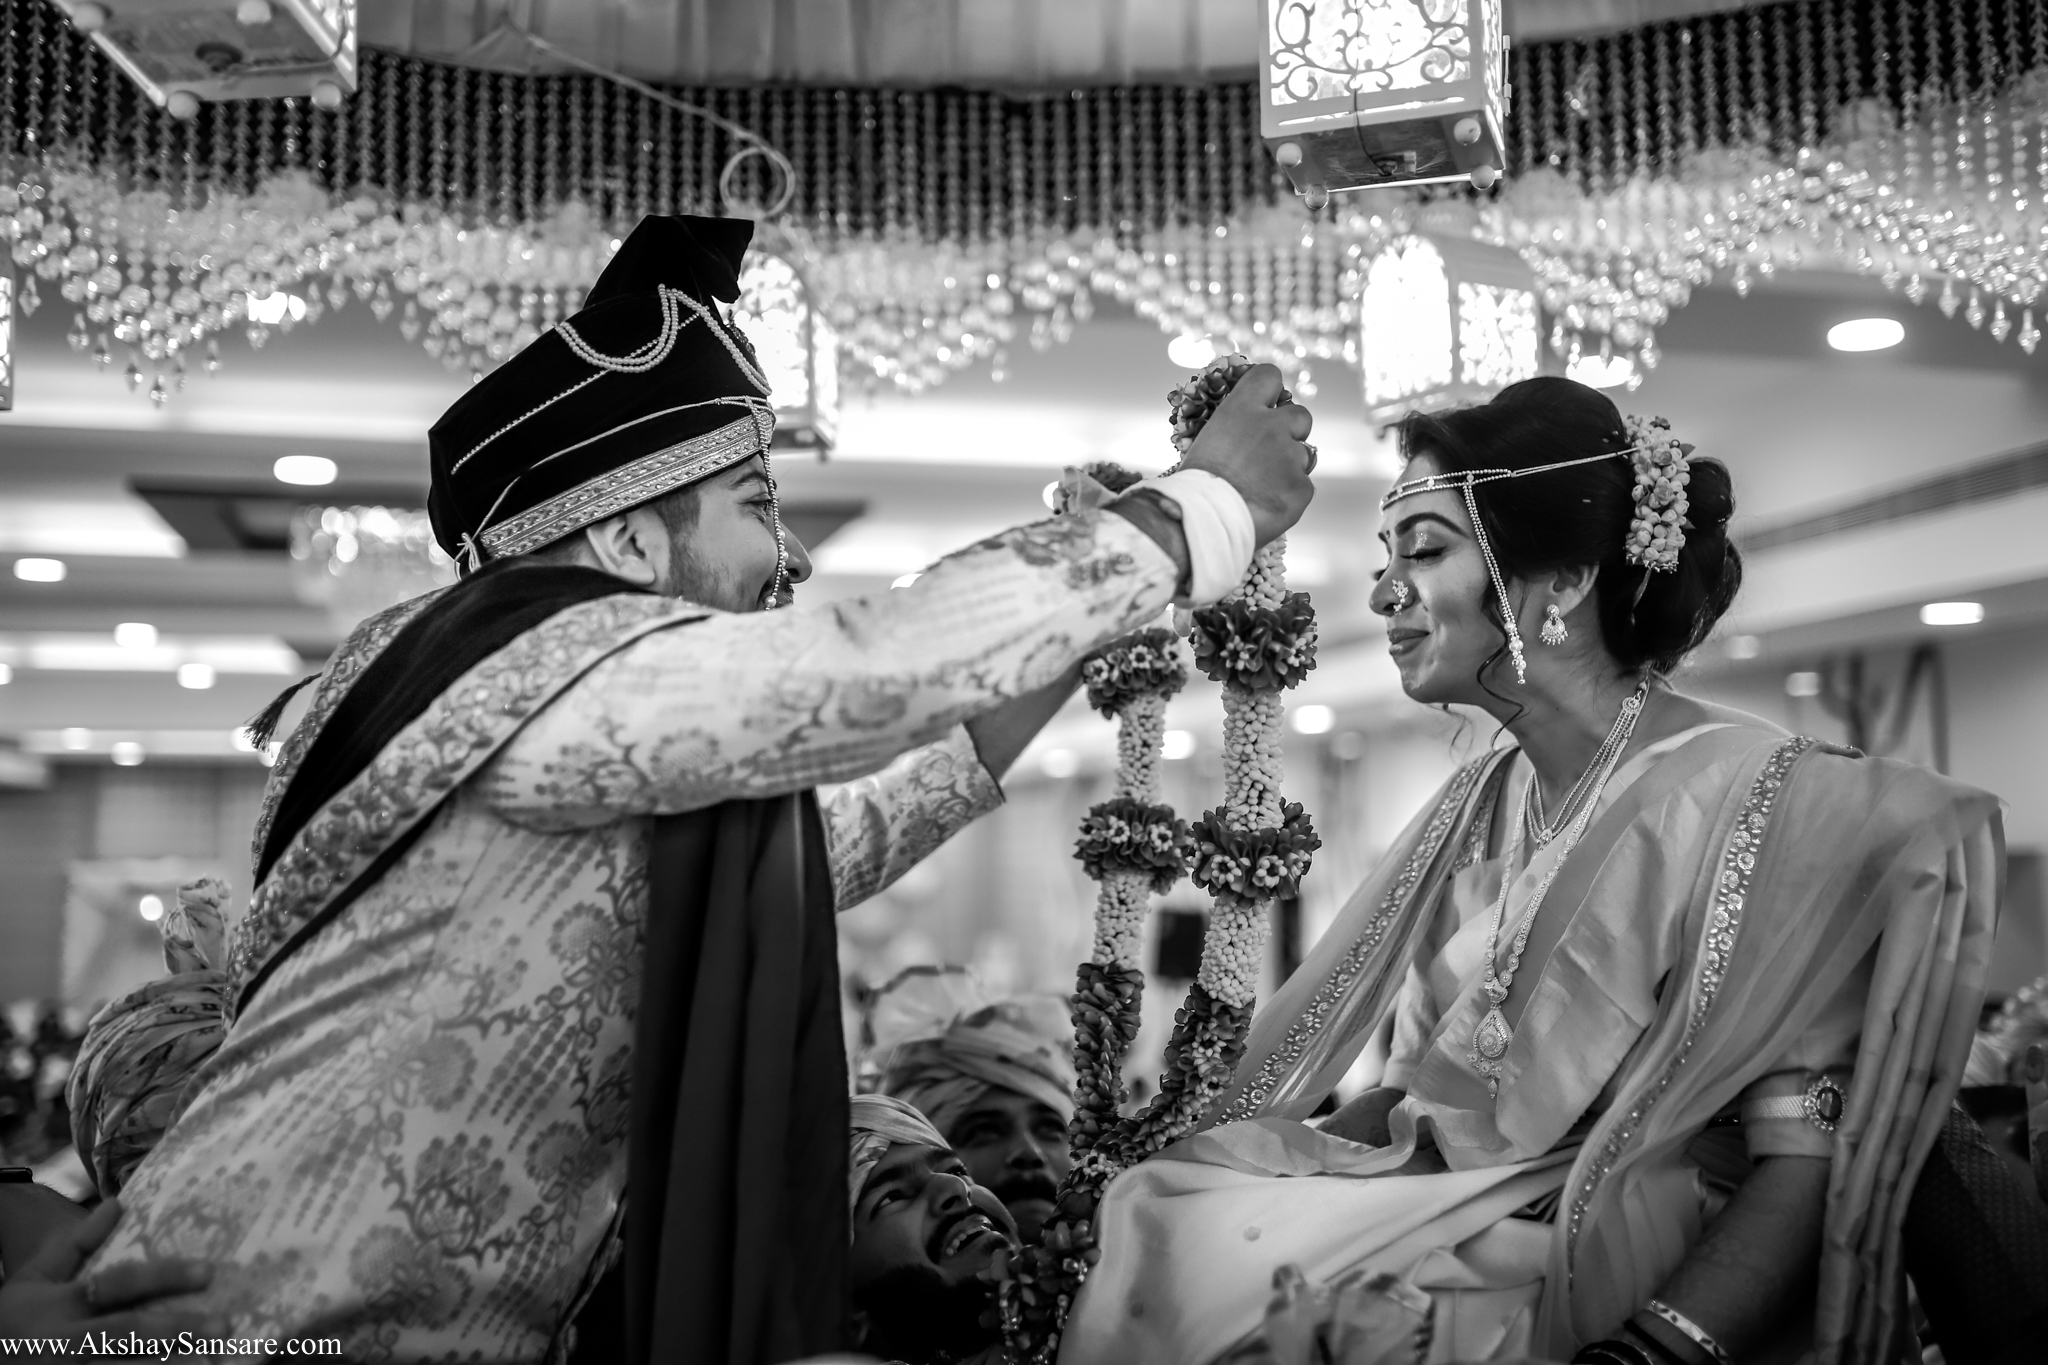 Nupur & Rohan wedding Akshay Sansare Photography best wedding photographer in mumbai India Candid(45).jpg